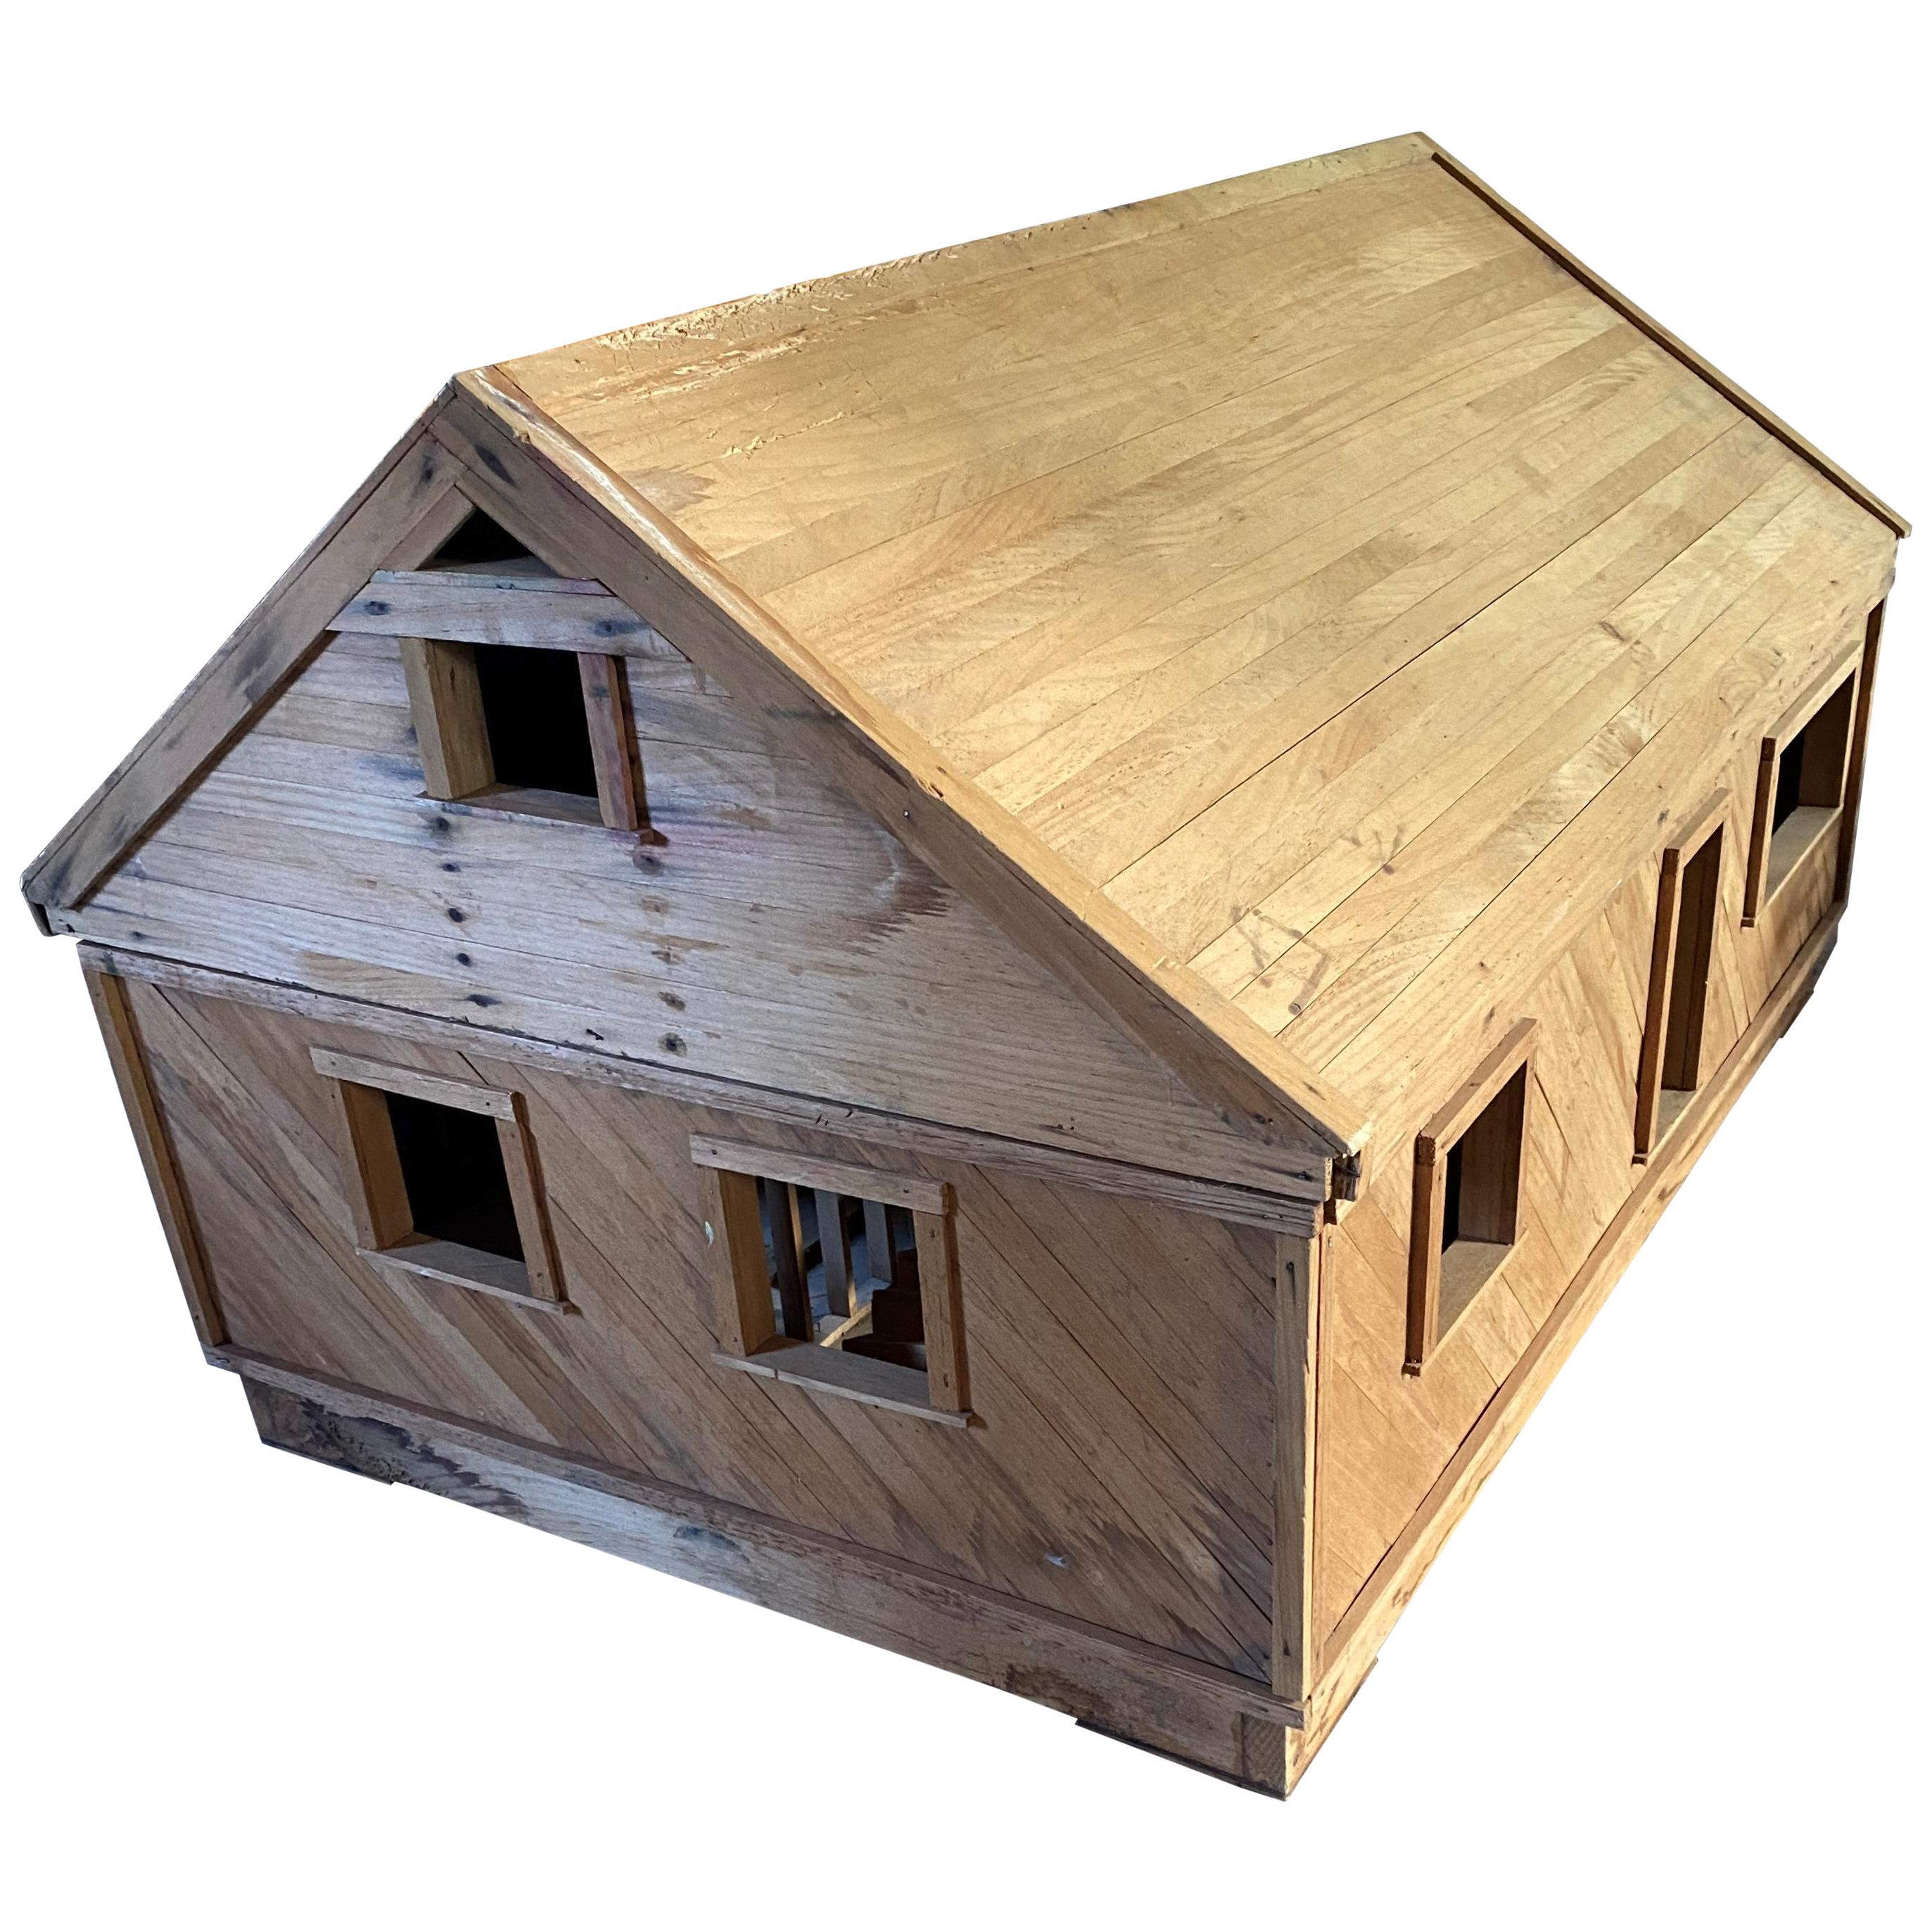 Architectural Model of a Timber Framed House